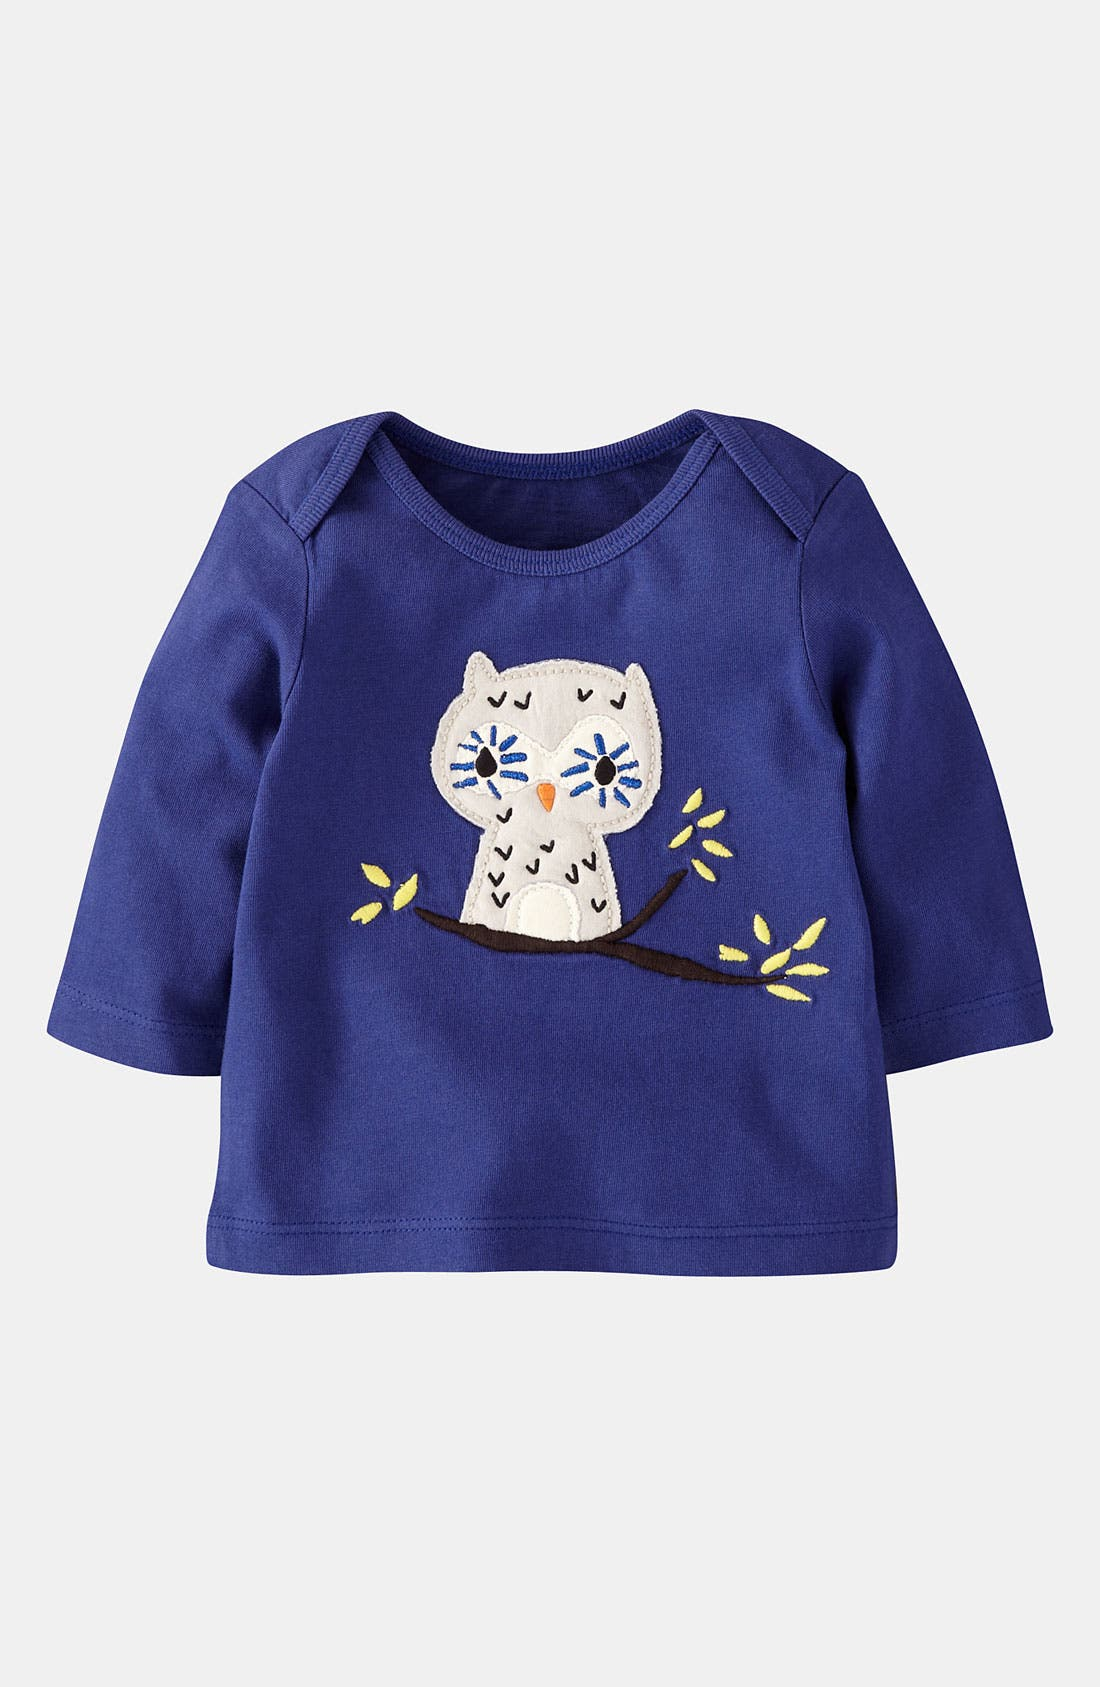 Main Image - Mini Boden 'Festive Friends' Tee (Infant)